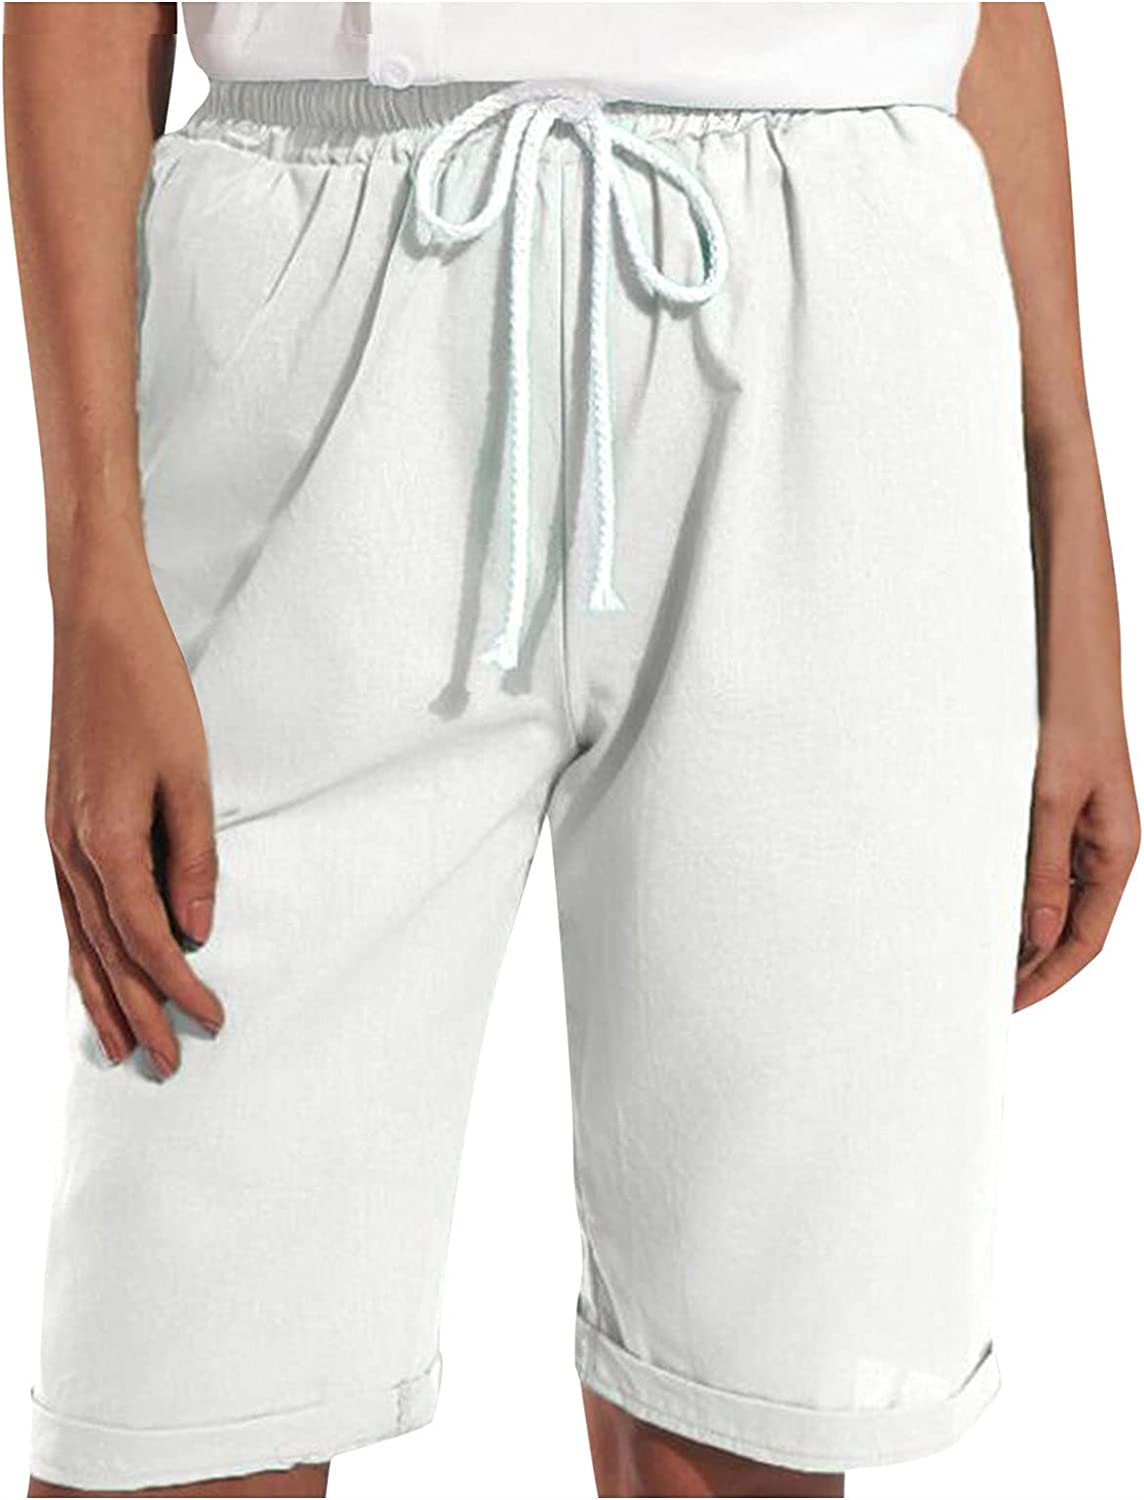 Bermuda Shorts Max 72% OFF for Women Casual Linen Comf Cotton Womens Summer safety